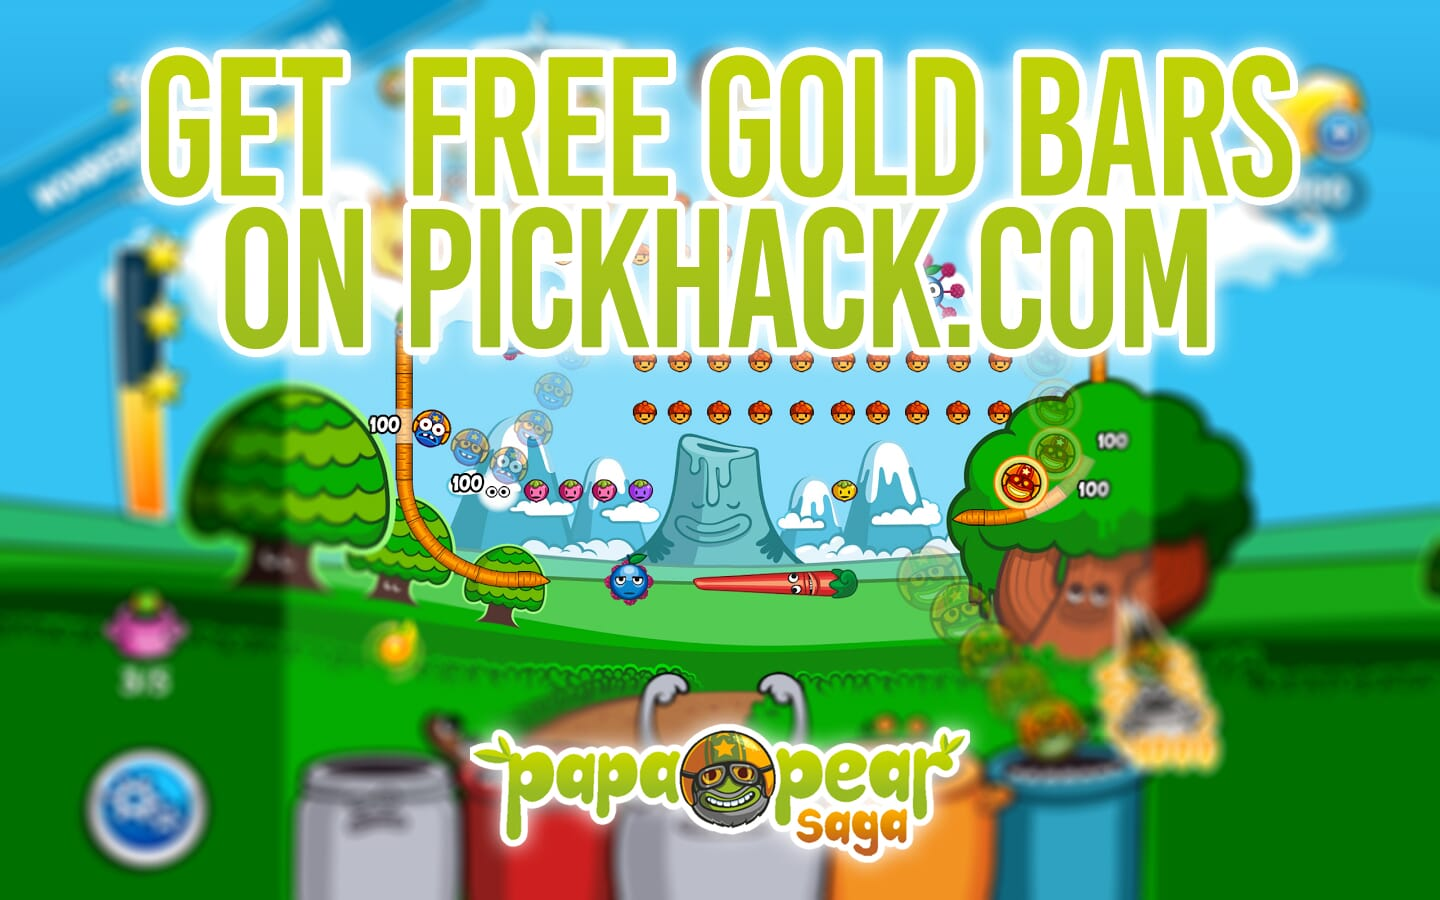 Image currently unavailable. Go to www.generator.pickhack.com and choose Papa Pear Saga image, you will be redirect to Papa Pear Saga Generator site.